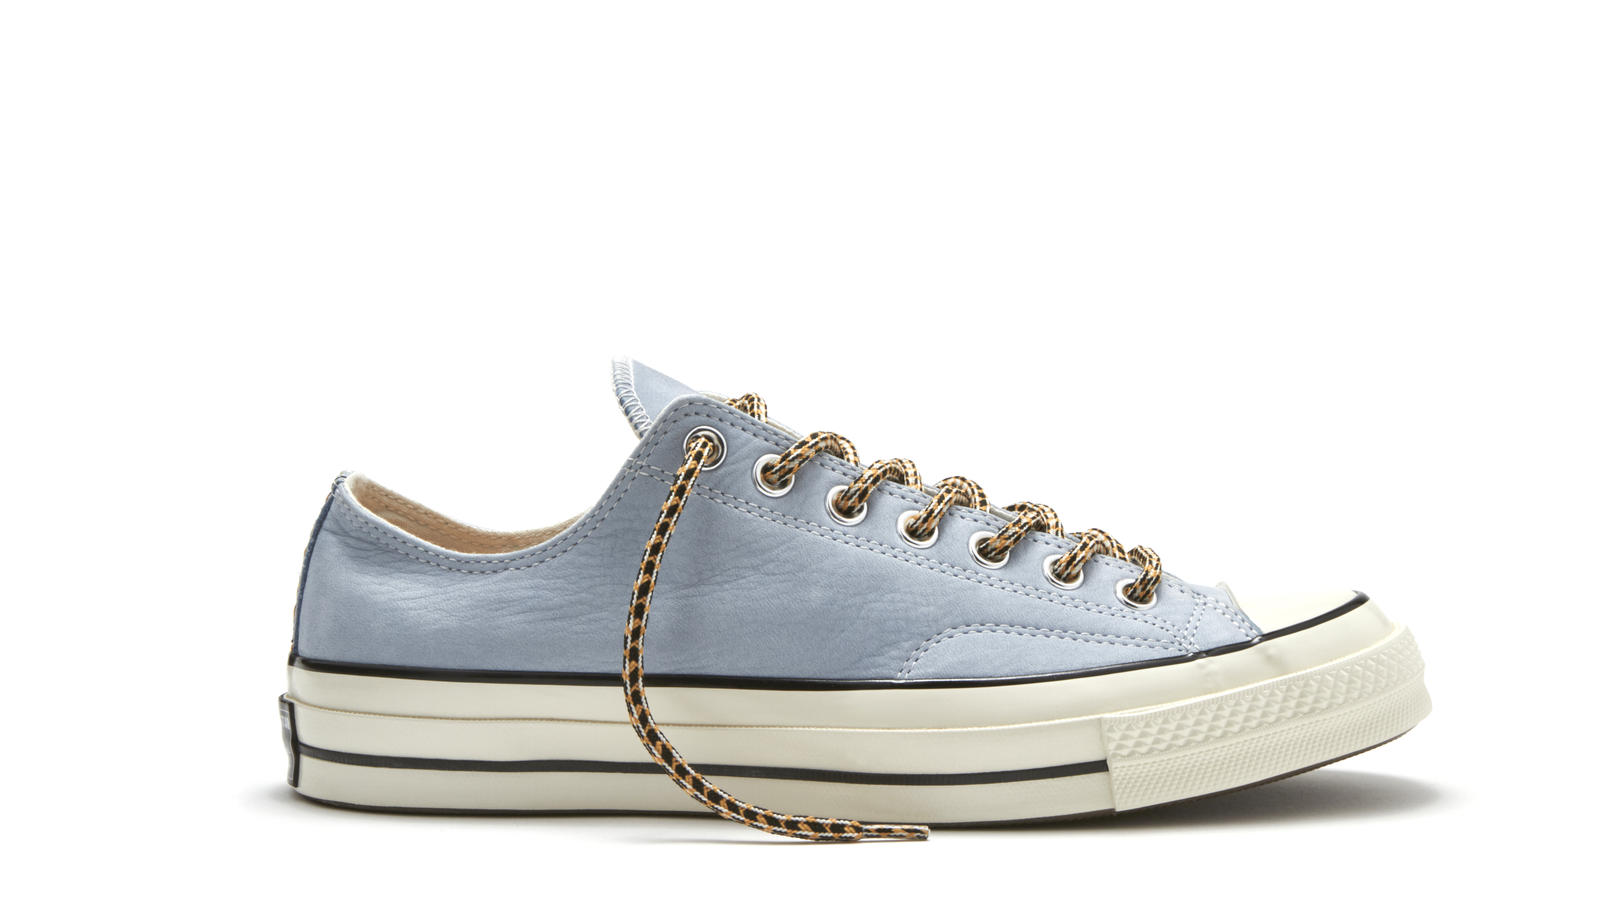 6b4c863e1159 NEW MATERIALS AND PASTEL HUES INSPIRE THE NEW CONVERSE COLLECTIONS ...